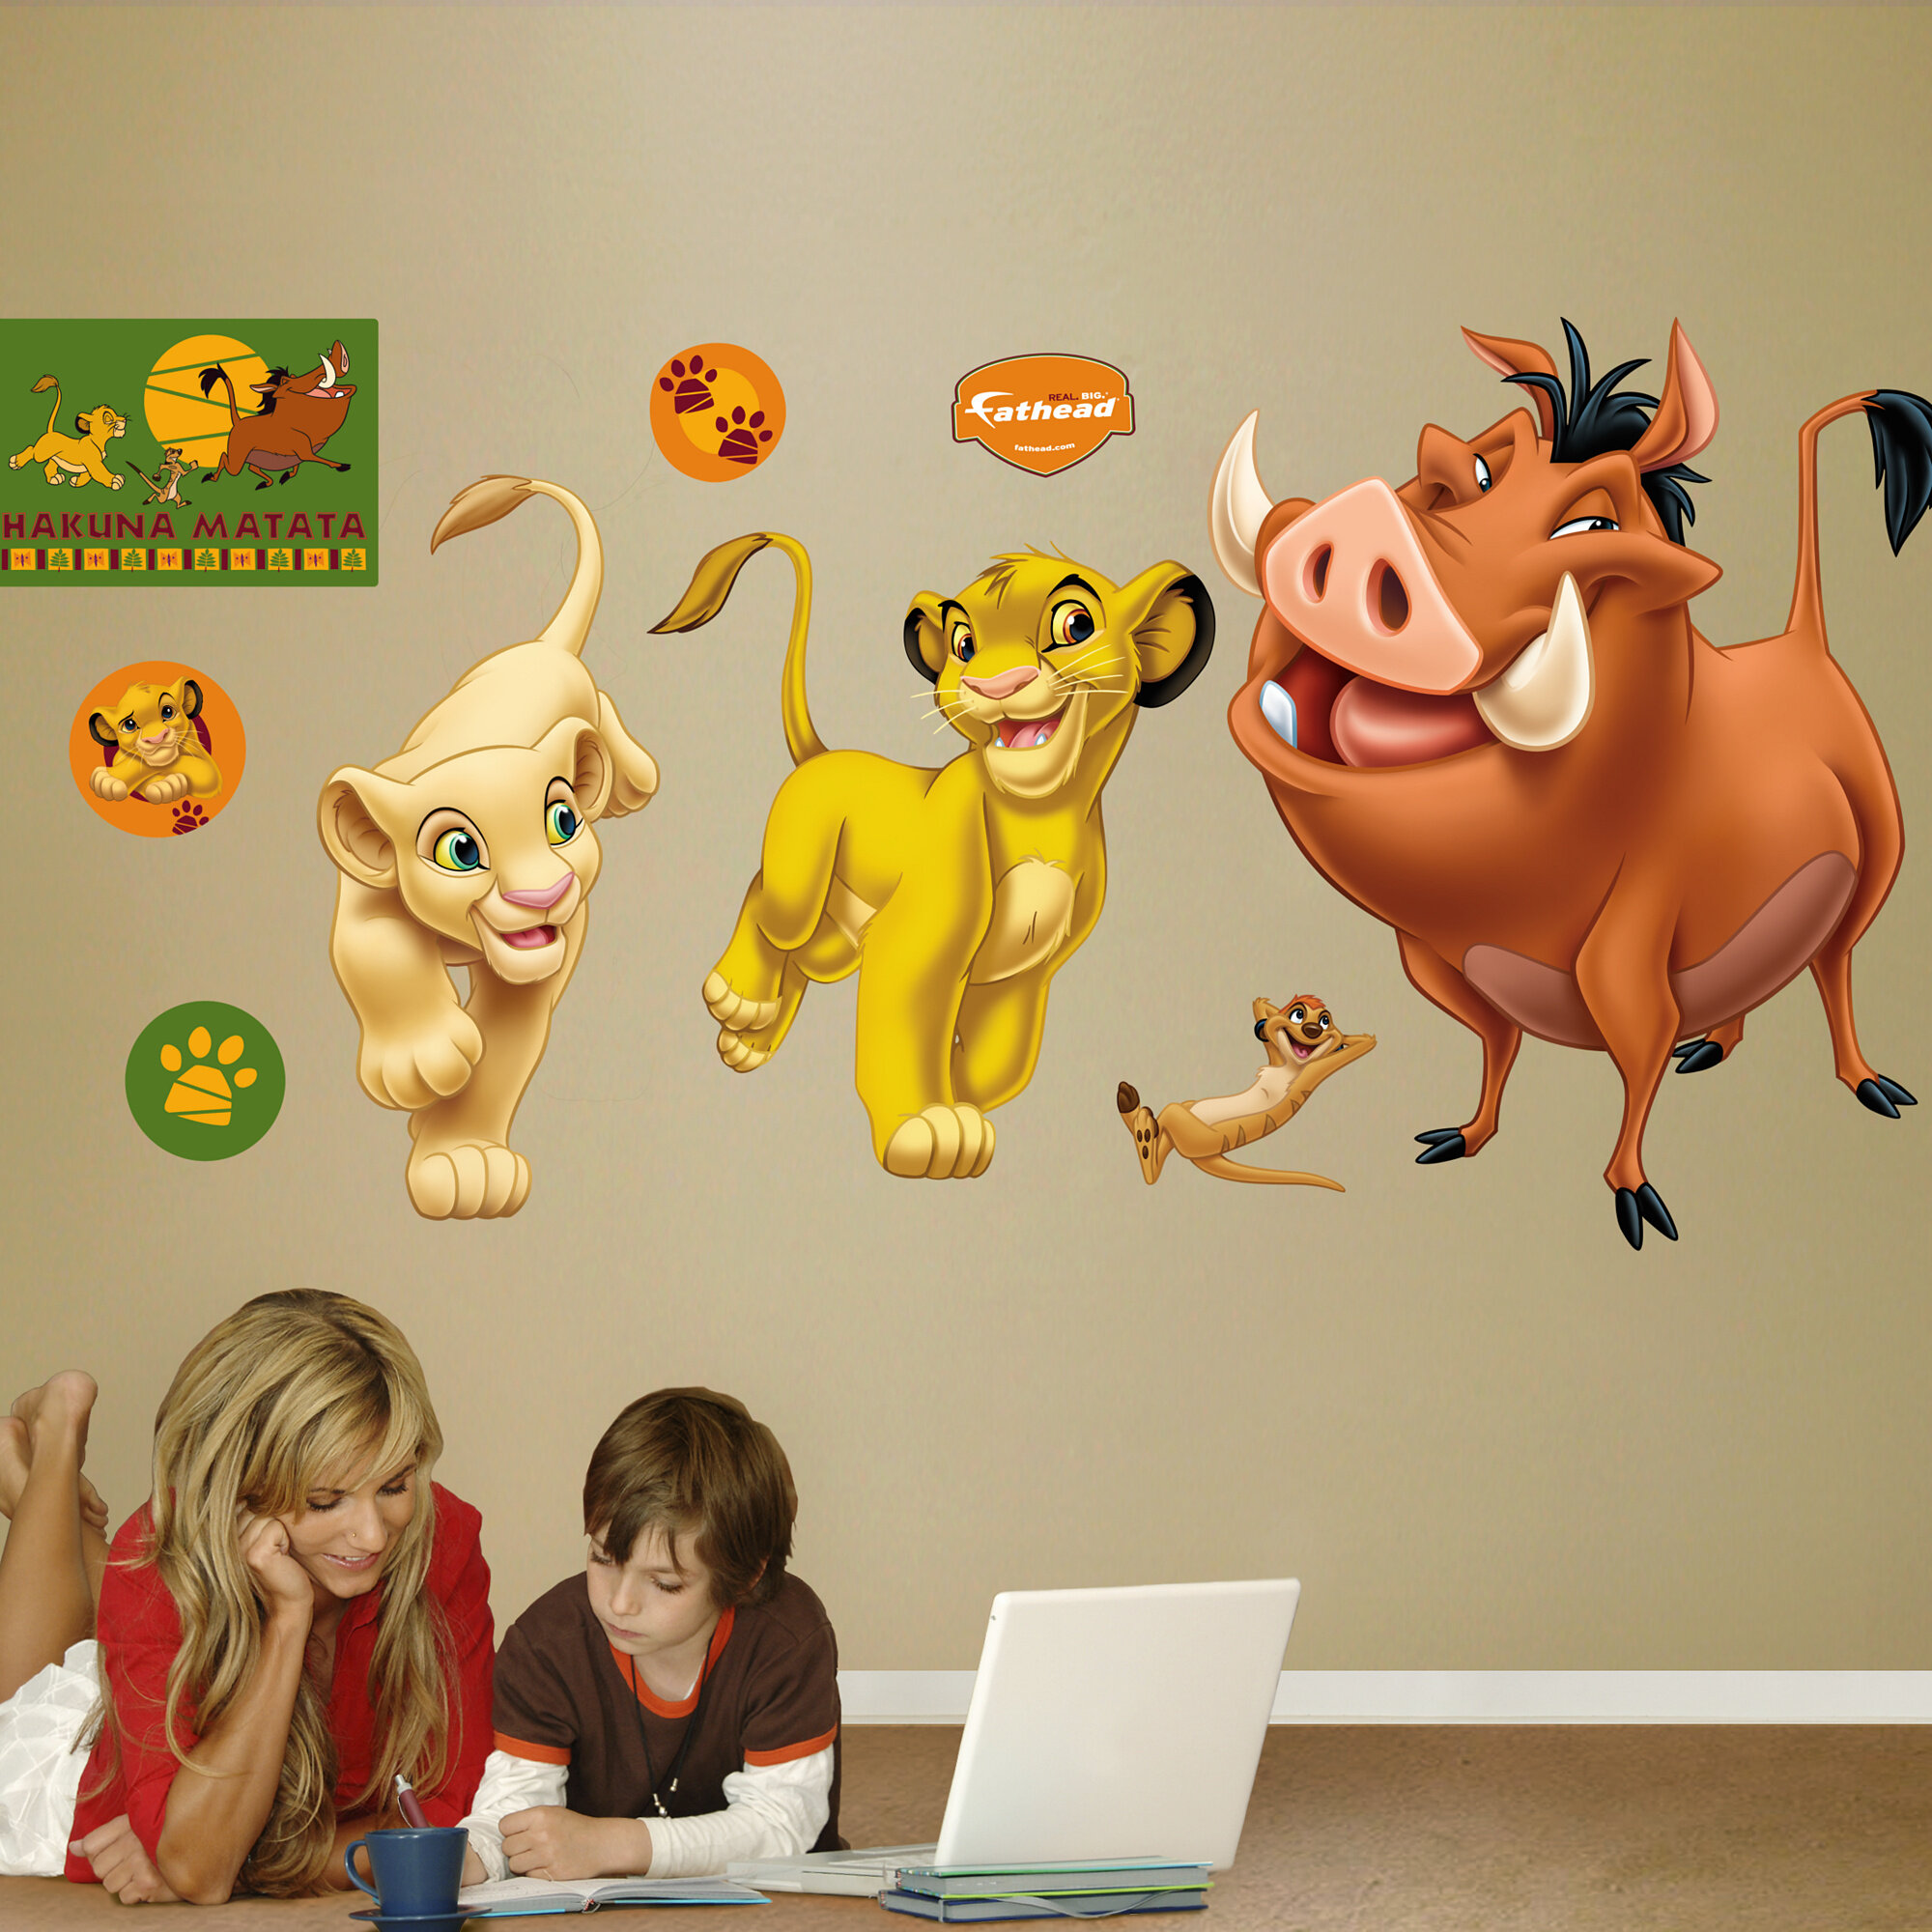 Fathead Disney Lion King Wall Decal | Wayfair